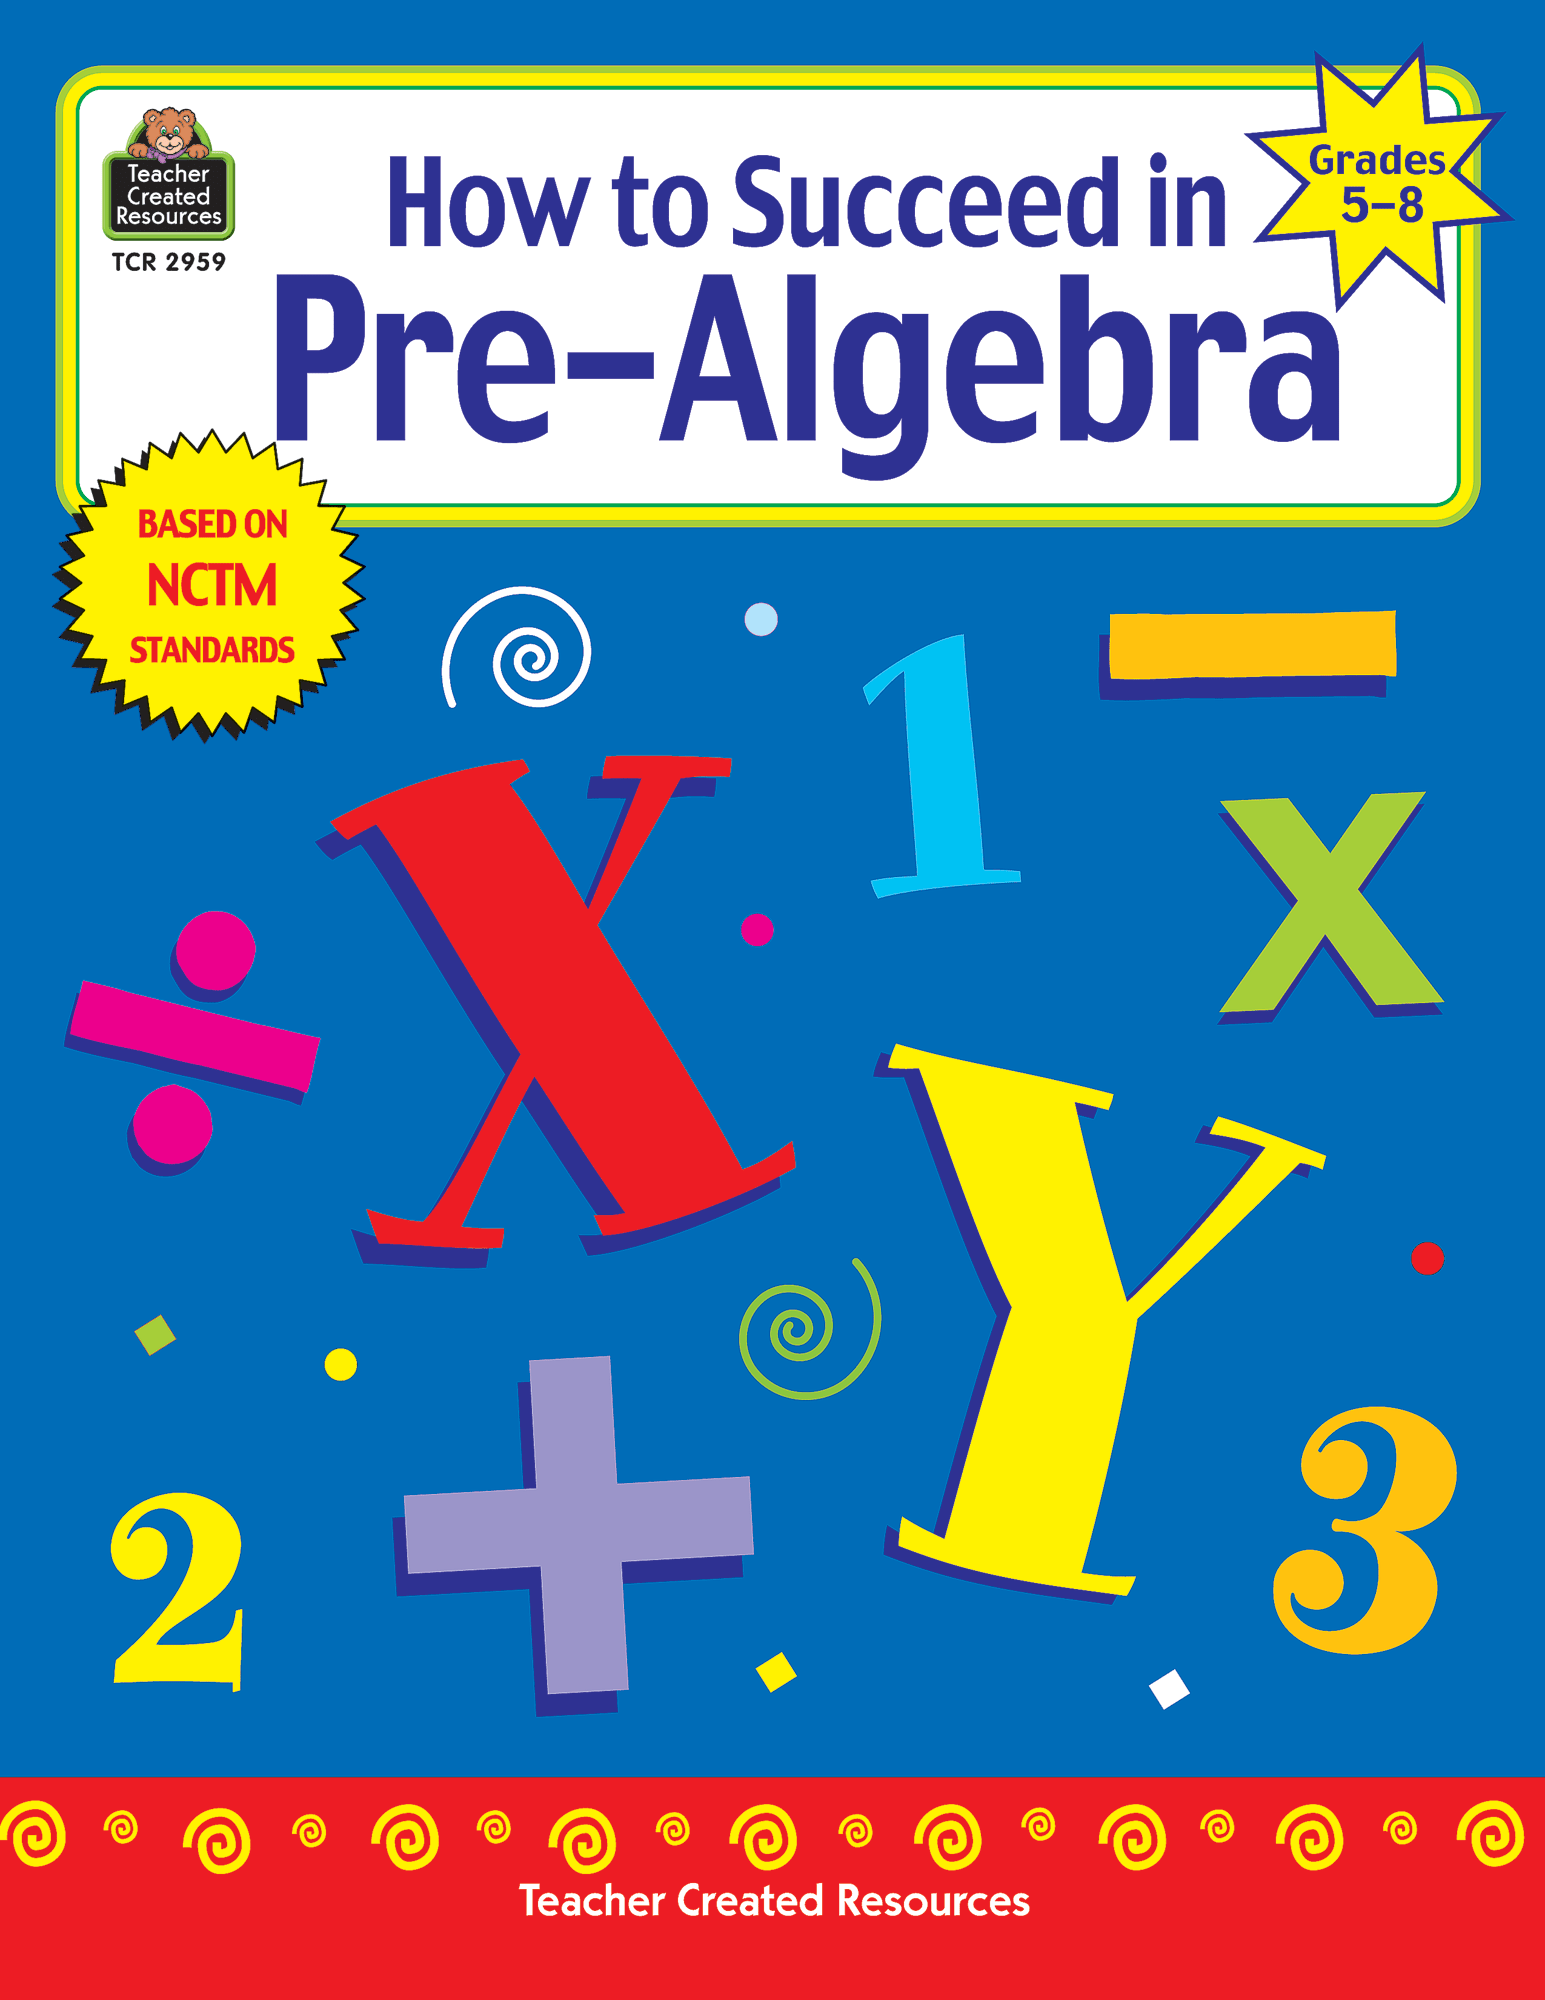 How To Succeed In Pre Algebra Grades 5 8